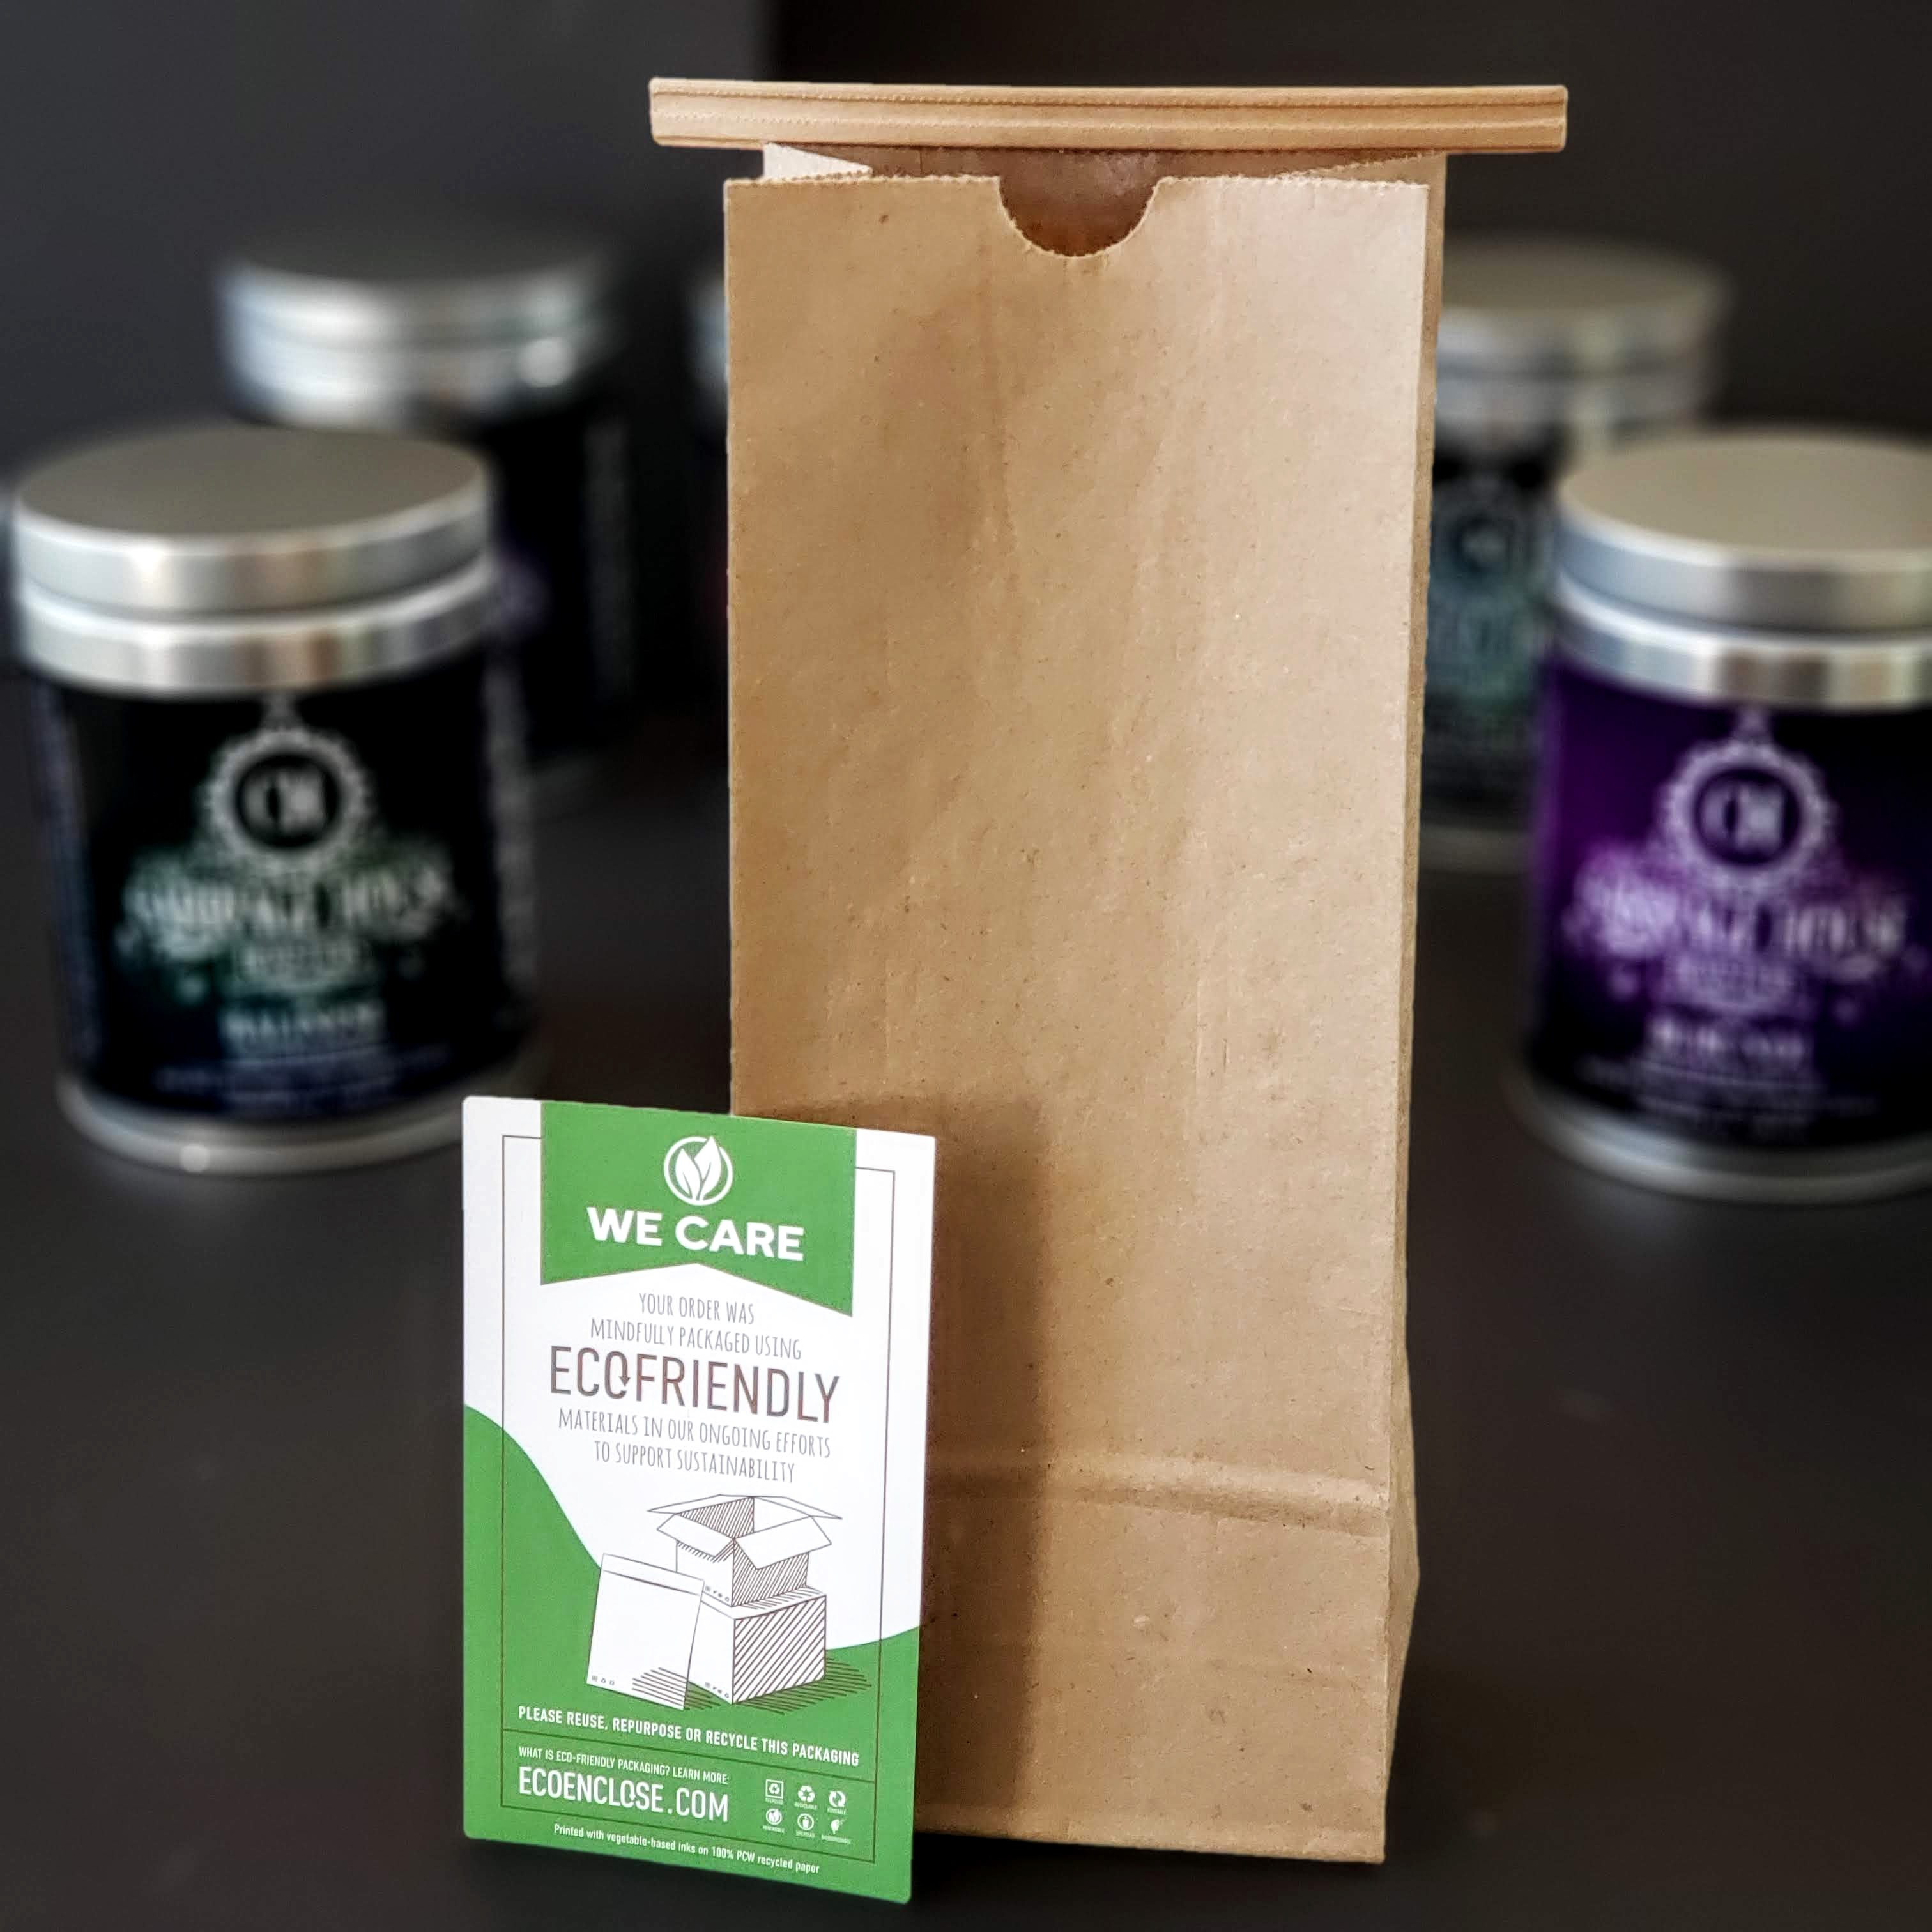 Our fully compostable bags made from recycled material